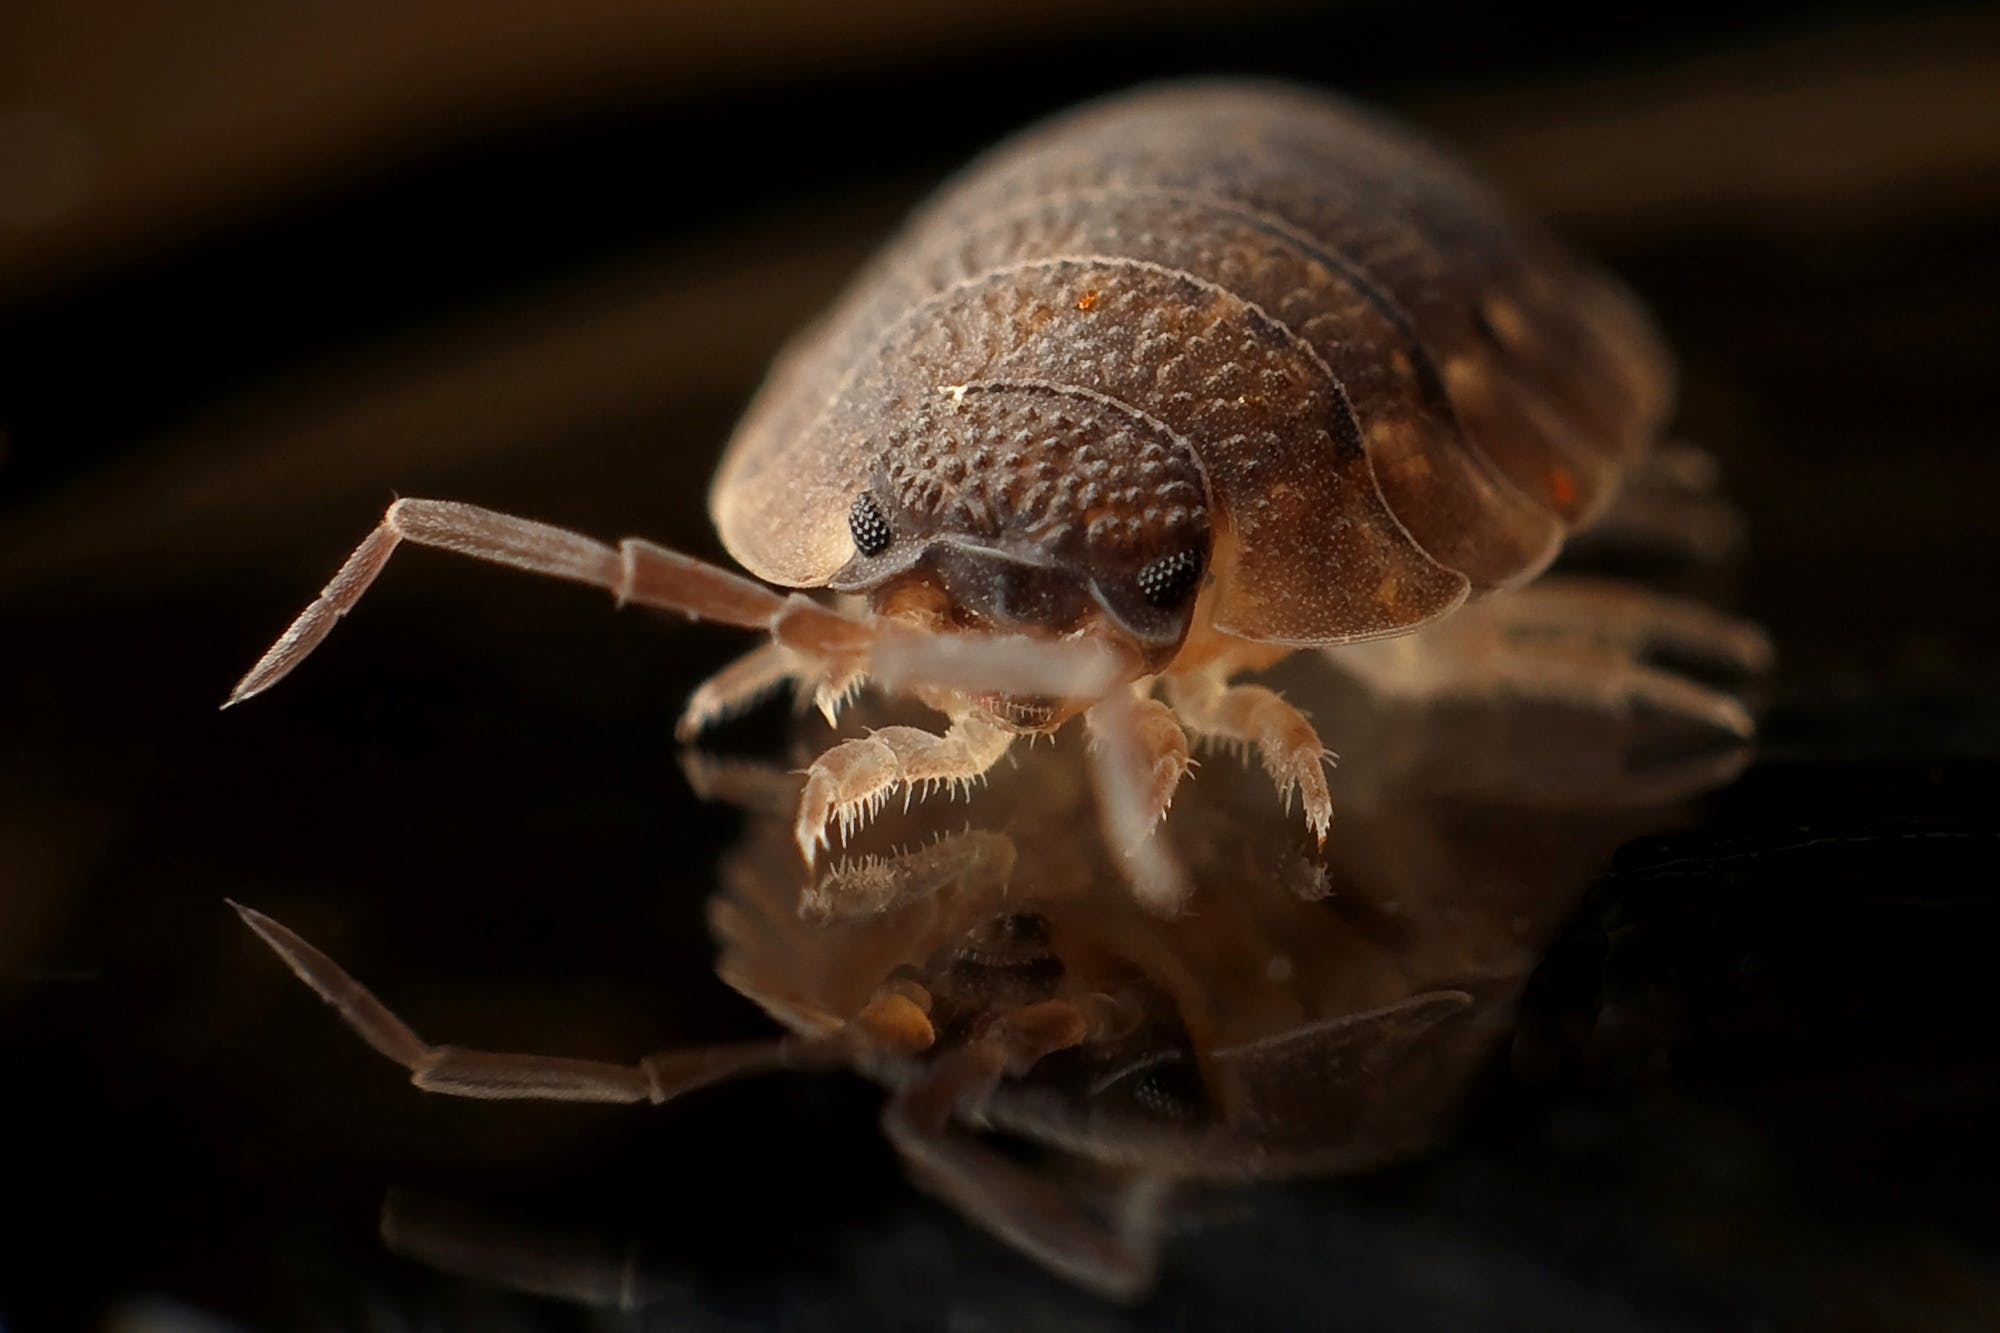 armadillo-worm-bug-insect.jpg?auto=compr